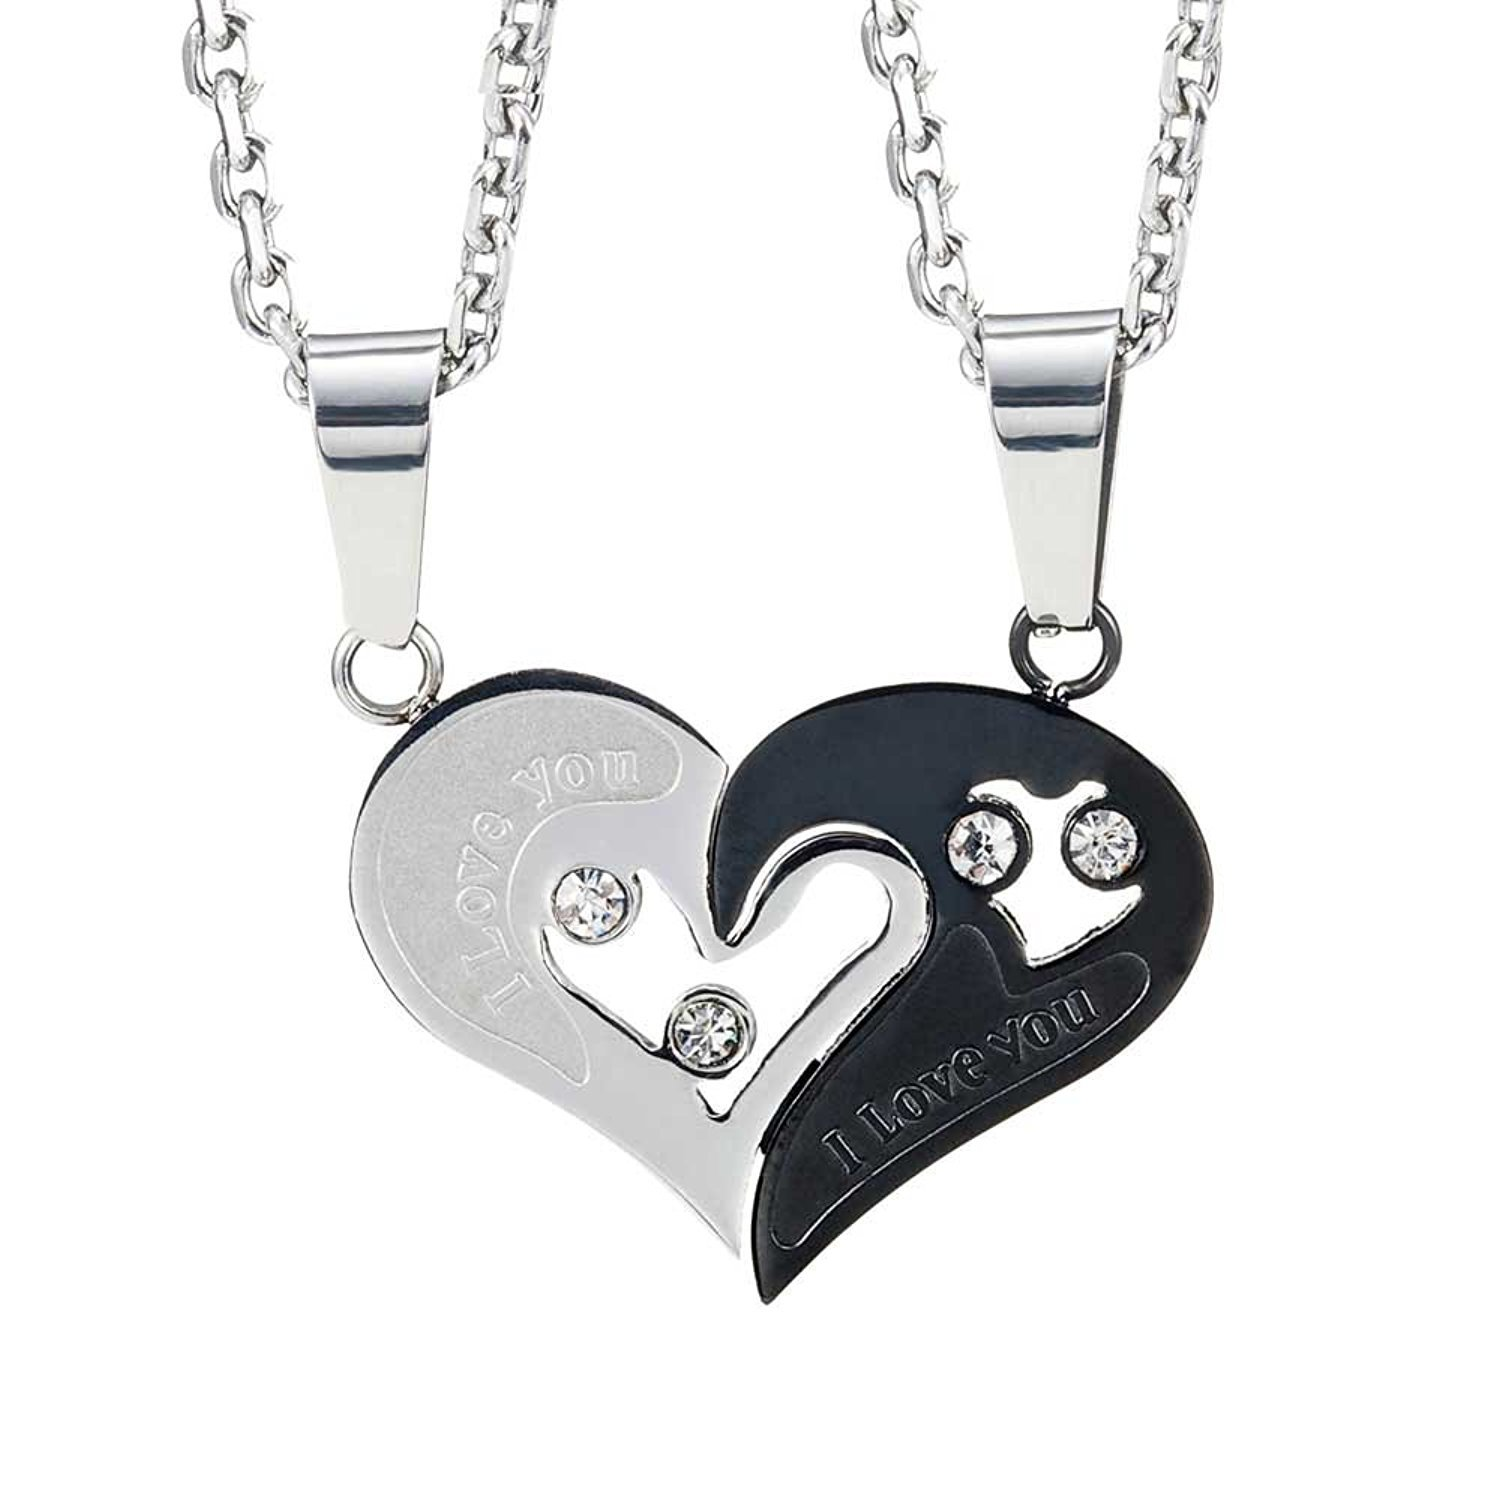 Pcs his u hers couples gift heart pendant love necklace set for